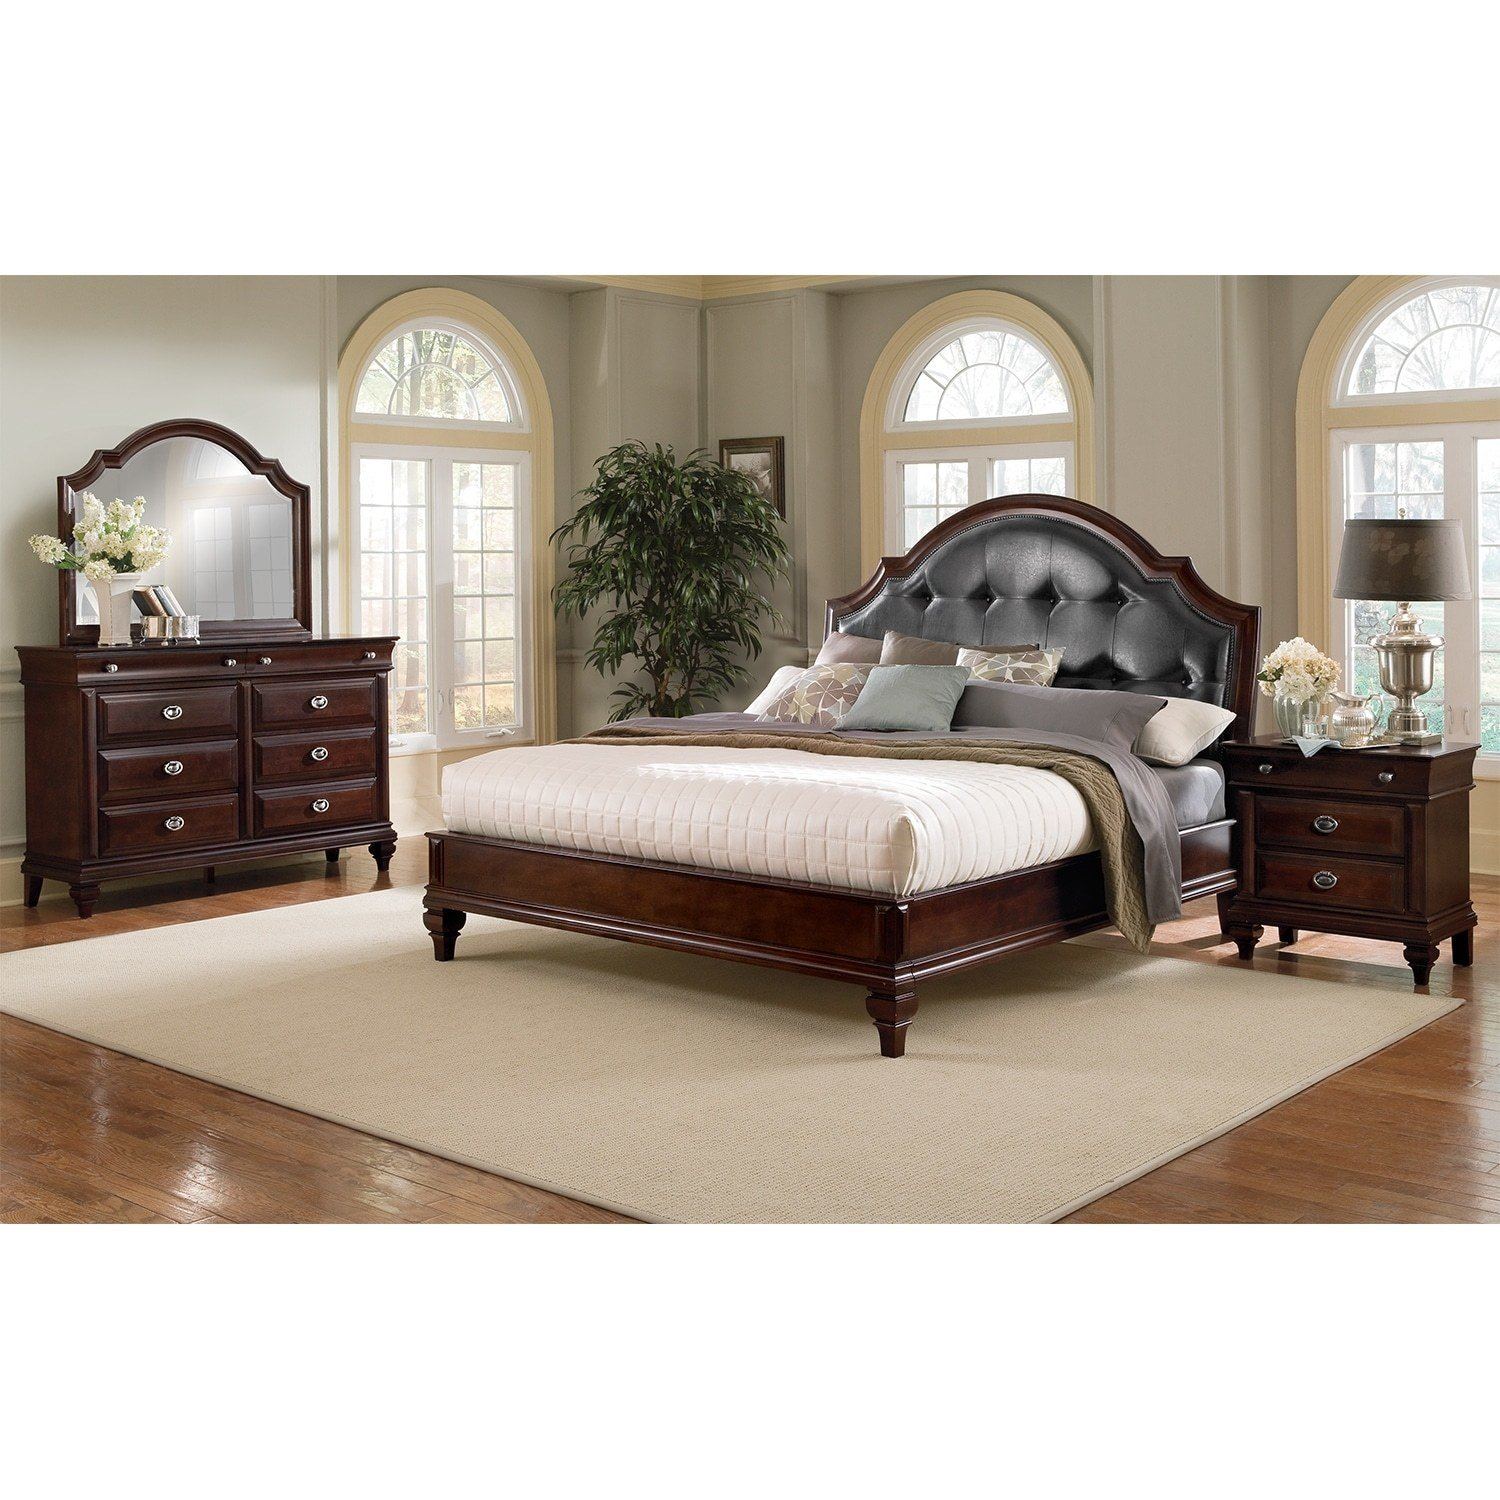 Best Manhattan 6 Piece King Bedroom Set Cherry Value City With Pictures